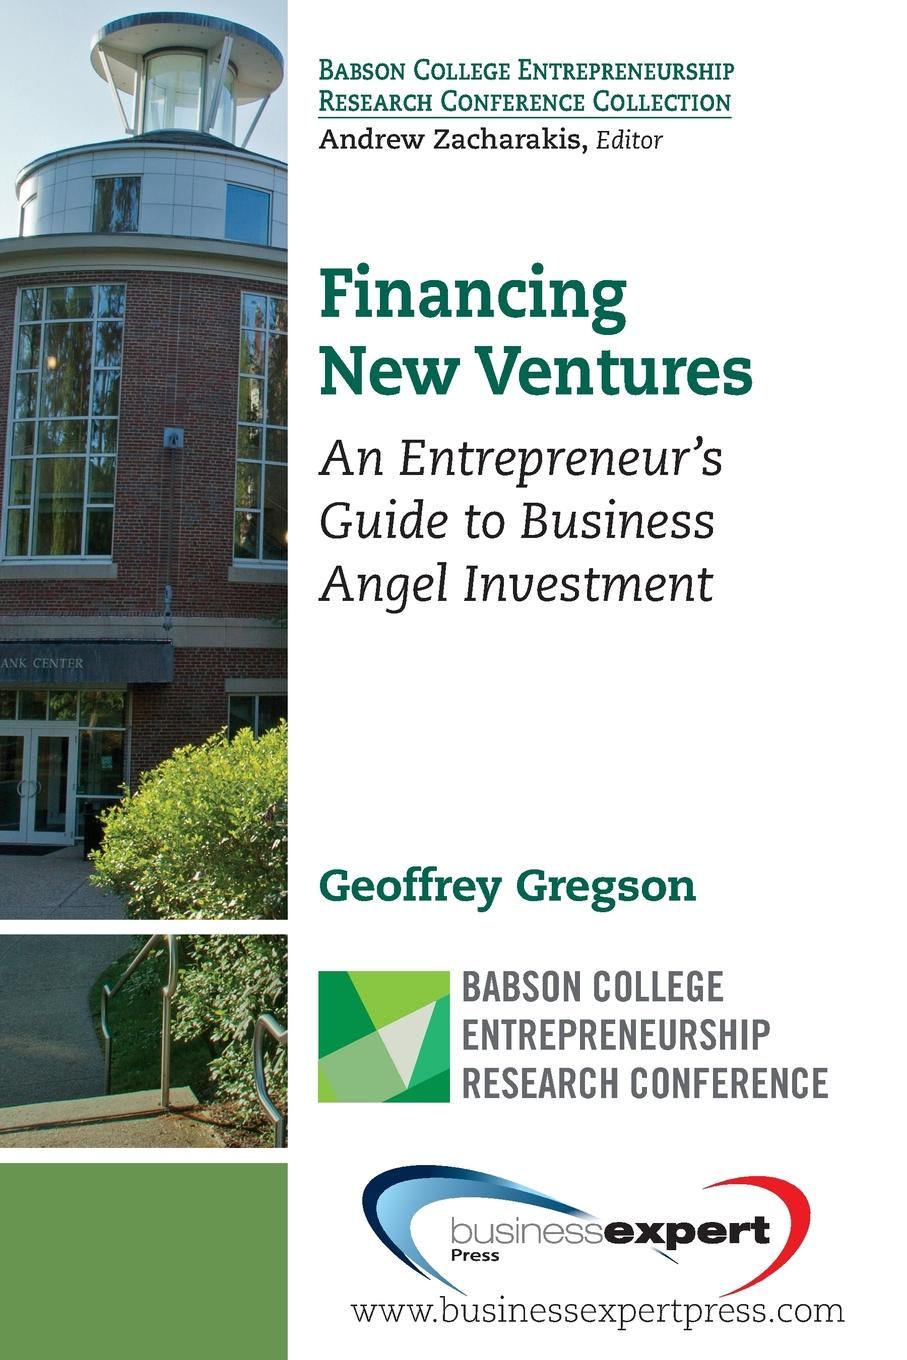 Geoffrey Gregson Financing New Ventures.  Entrepreneur. Guide to Business Angel Investment